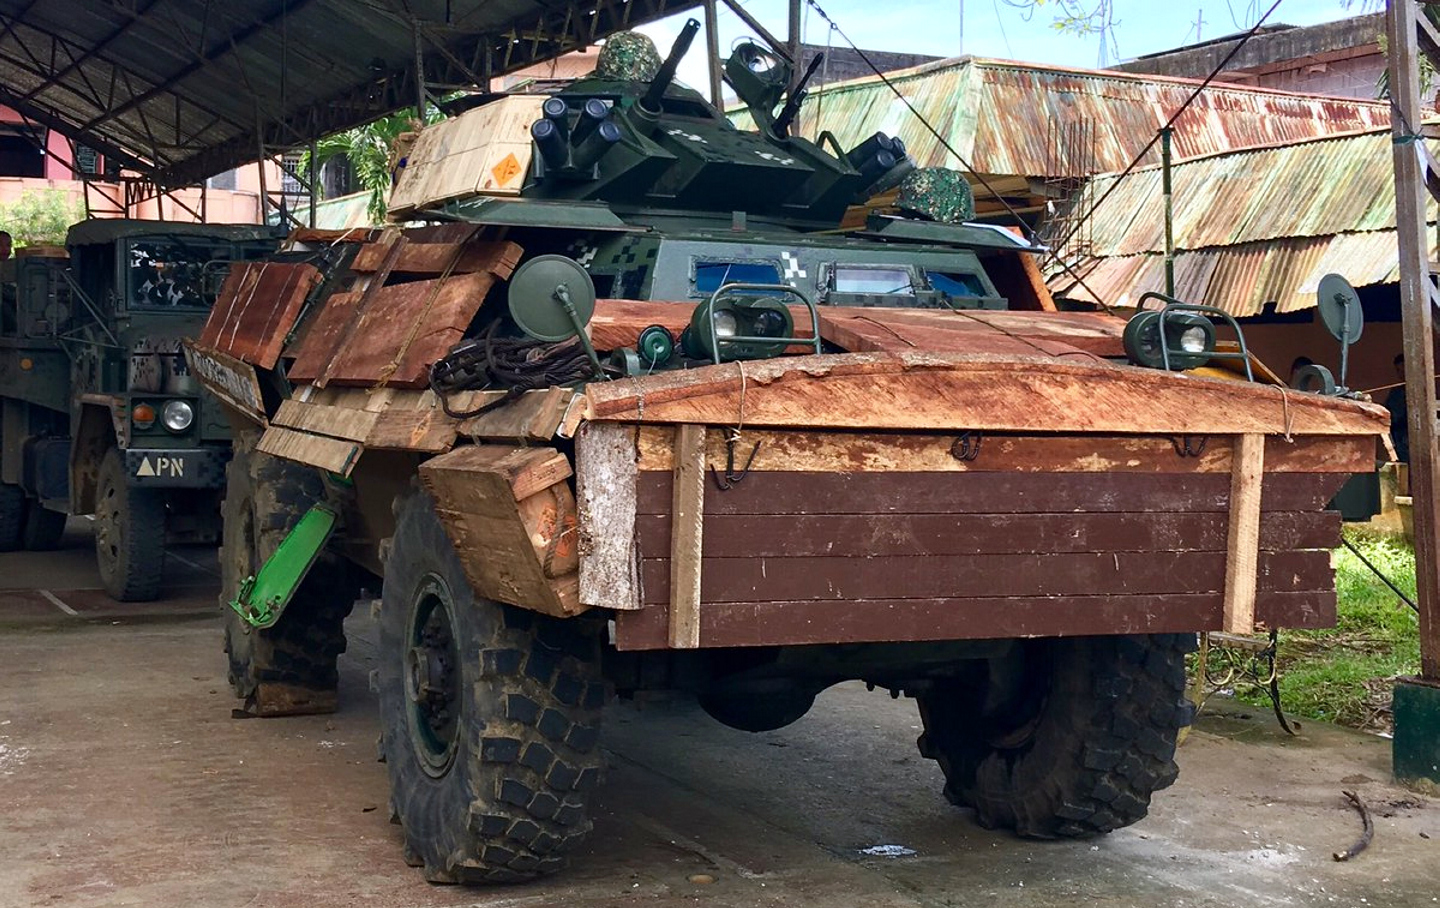 A v 150 fitted with wooden armor photo courtesy of raffy tima s official twitter account